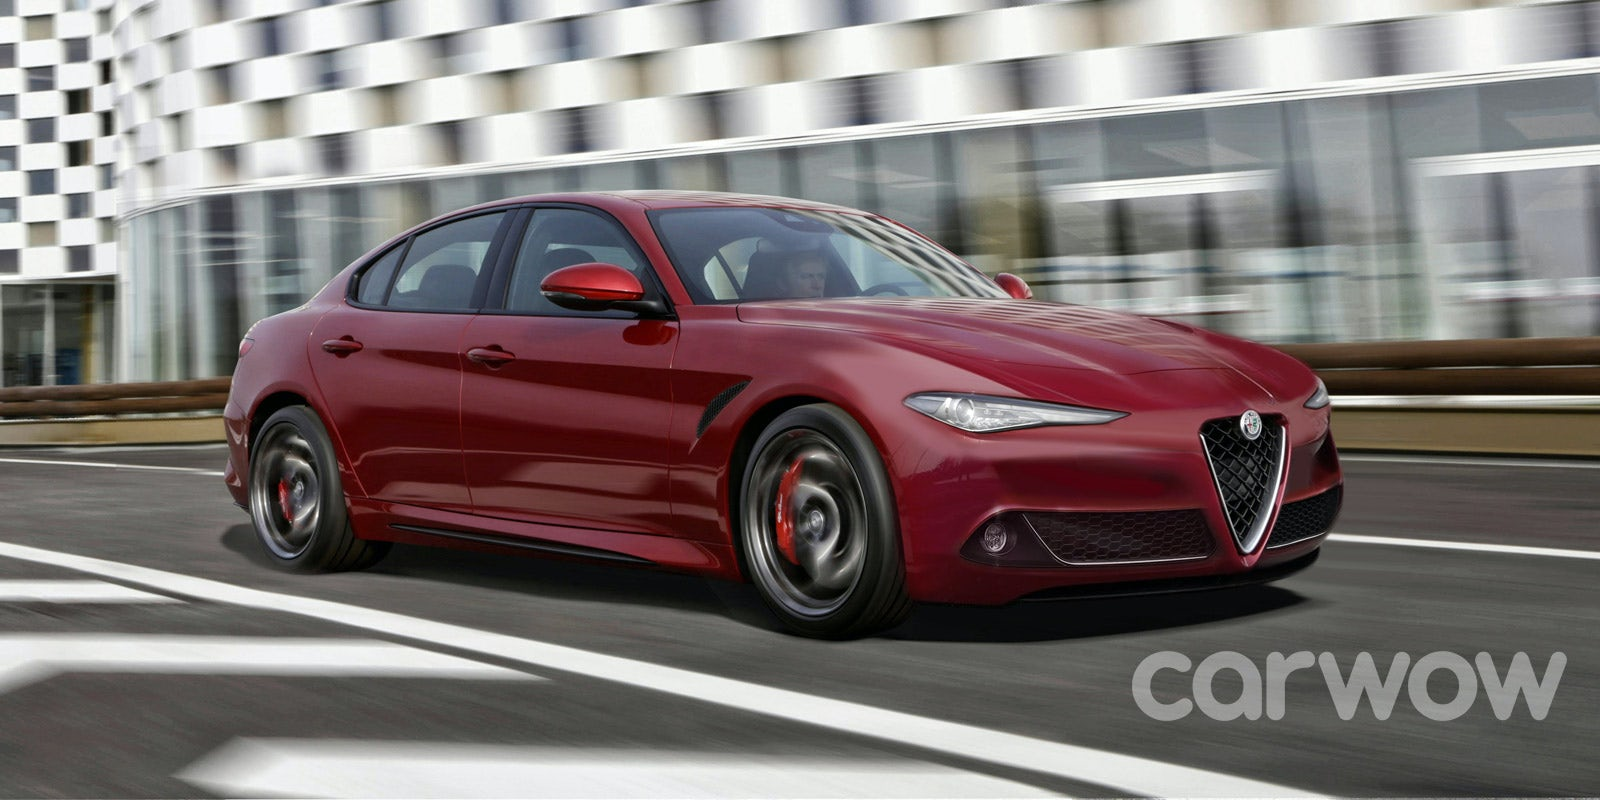 Alfa Romeo Alfetta Larger Giulia Price Specs And Release Date Series 1 Rumours Suggest Will Build A Bmw 5 Rival Thought To Be Called The It Could Get Petrol Plug In Hybrid Power